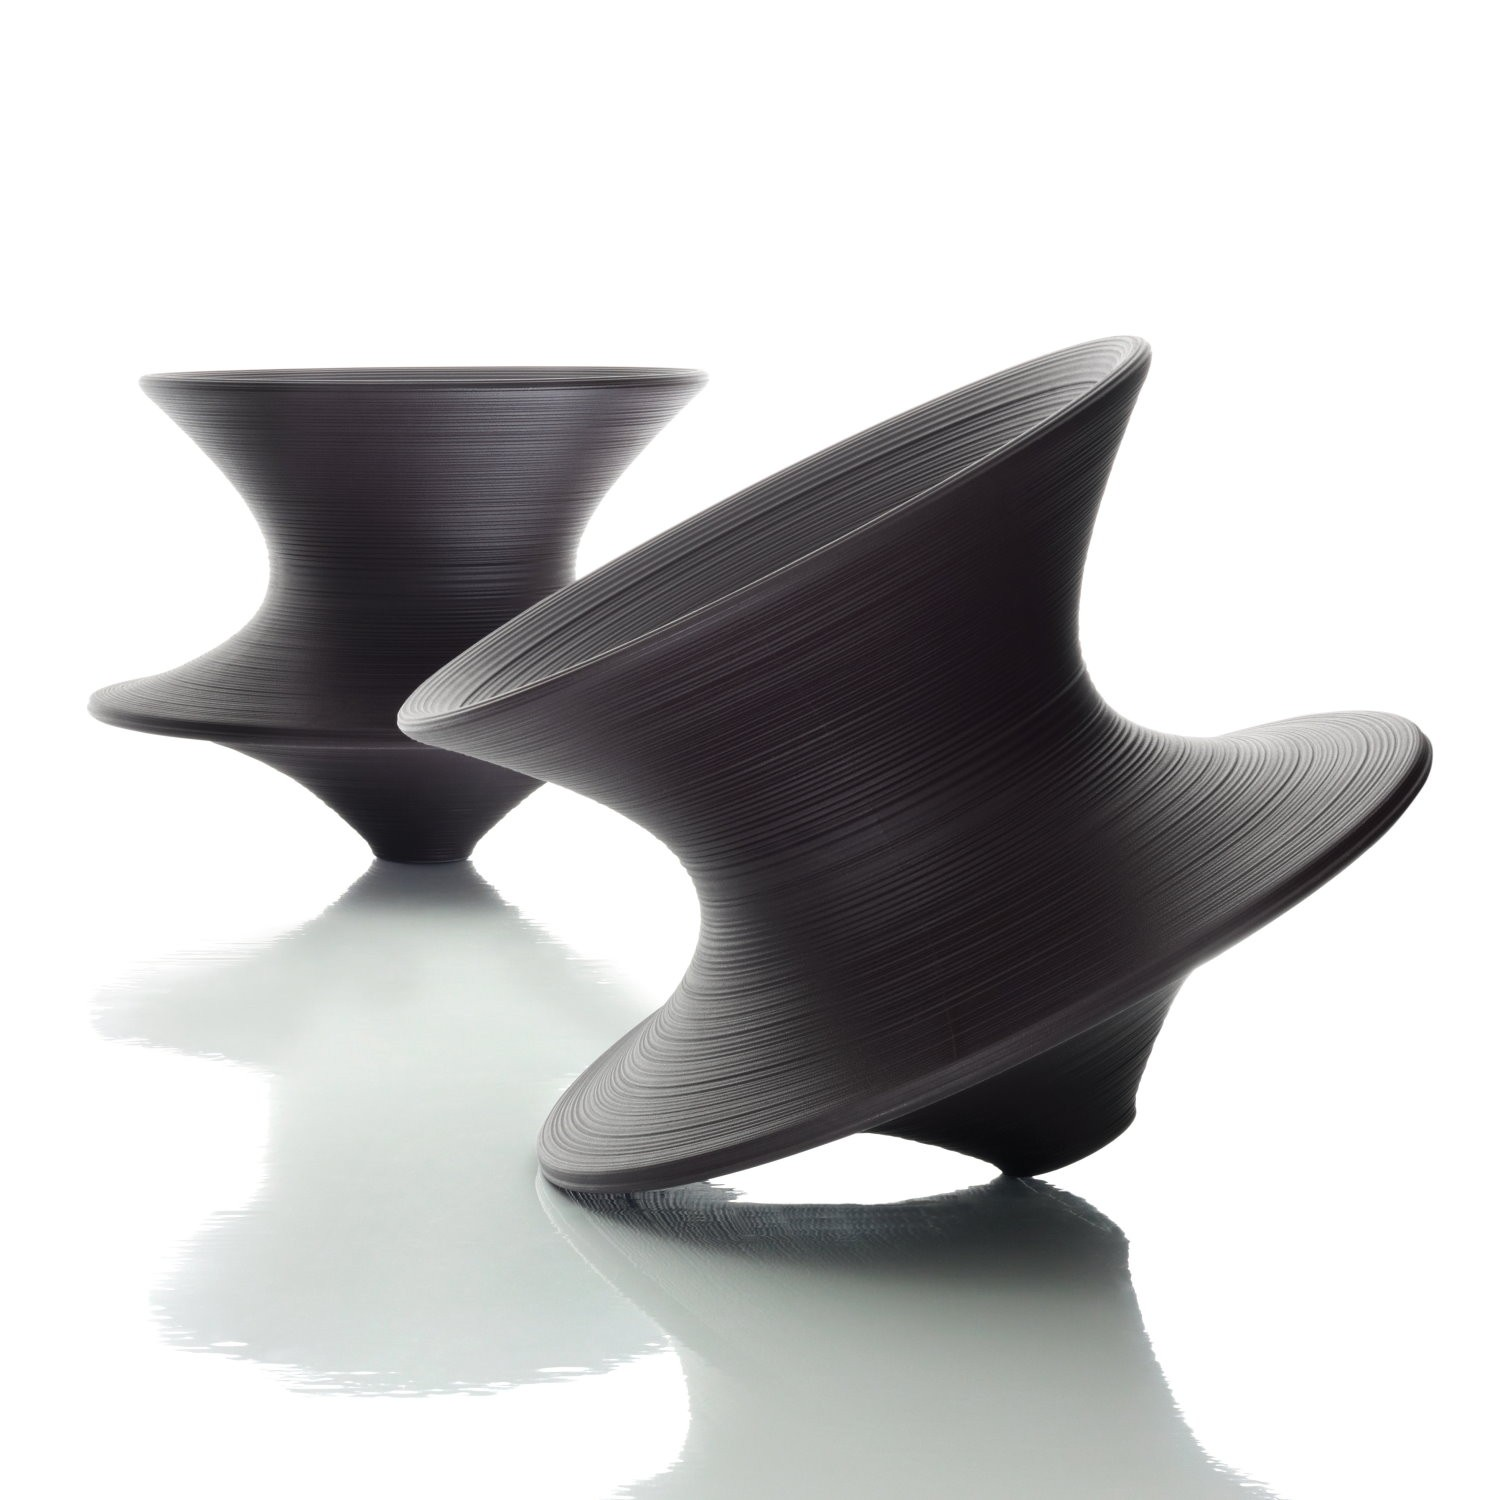 Spun rotating chair